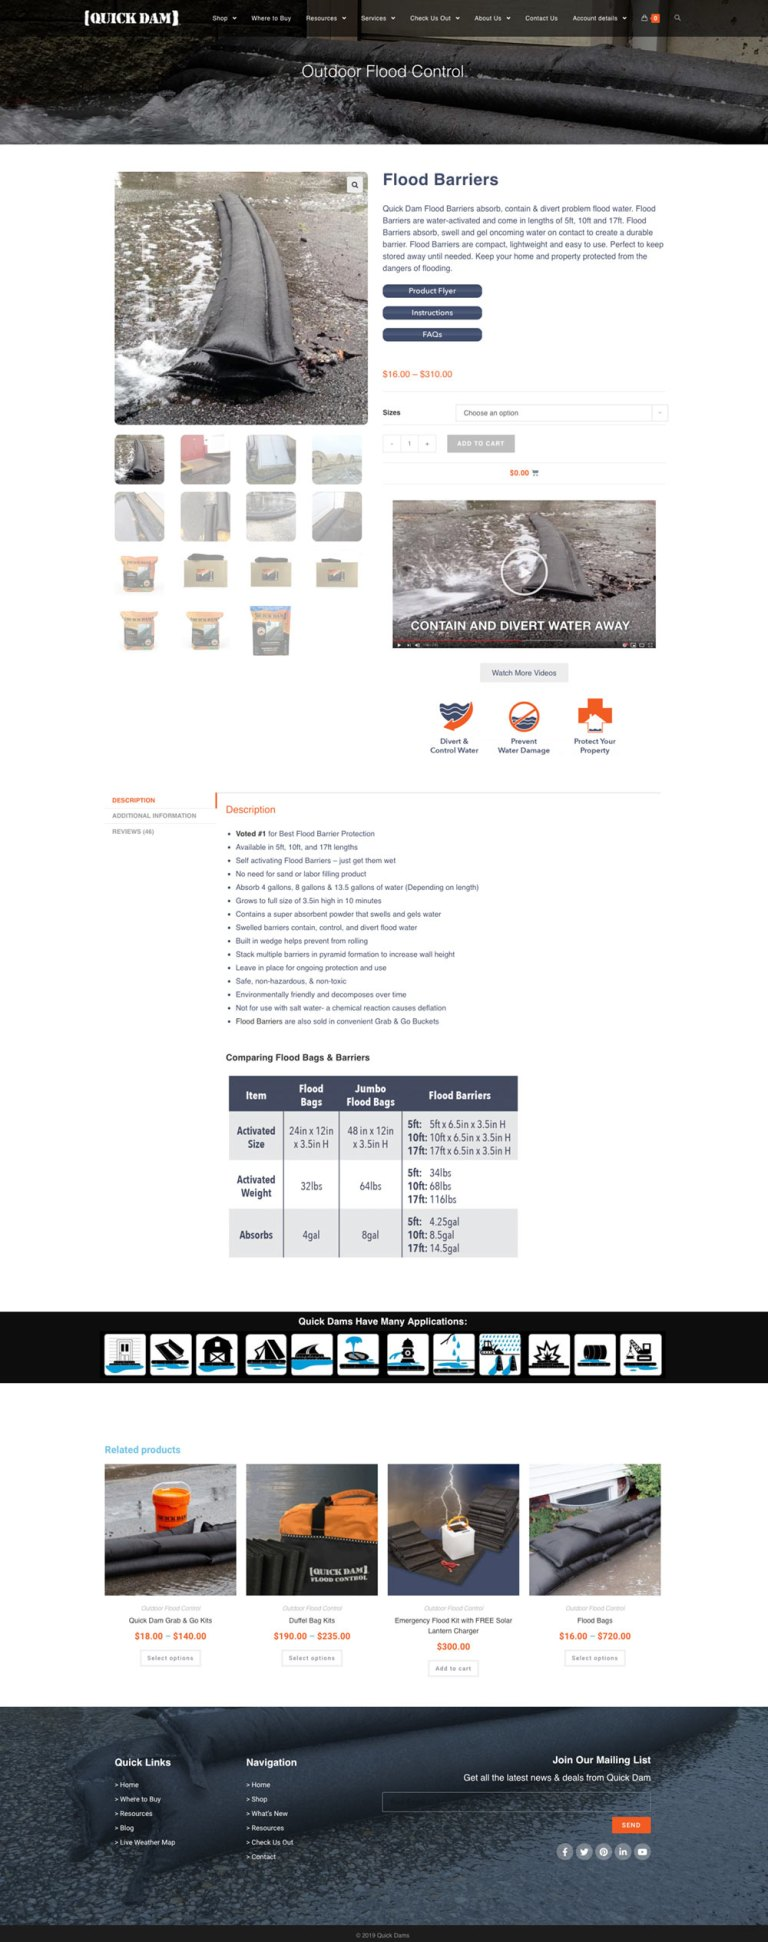 quickdam_website_product_page